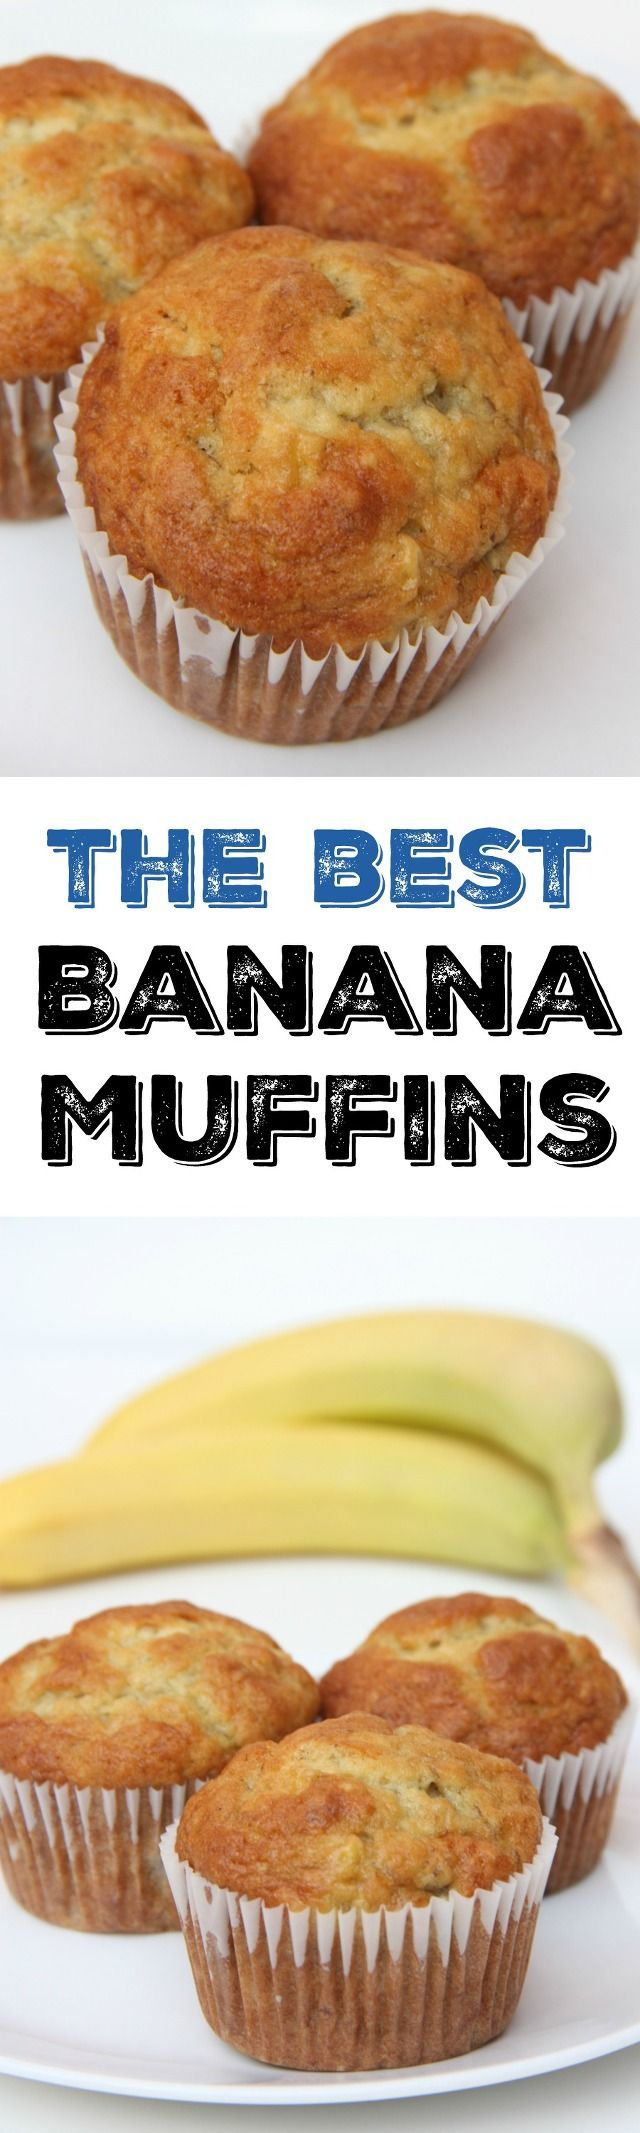 The Best Banana Muffins Great Banana Flavor Moist And So Easy To Make